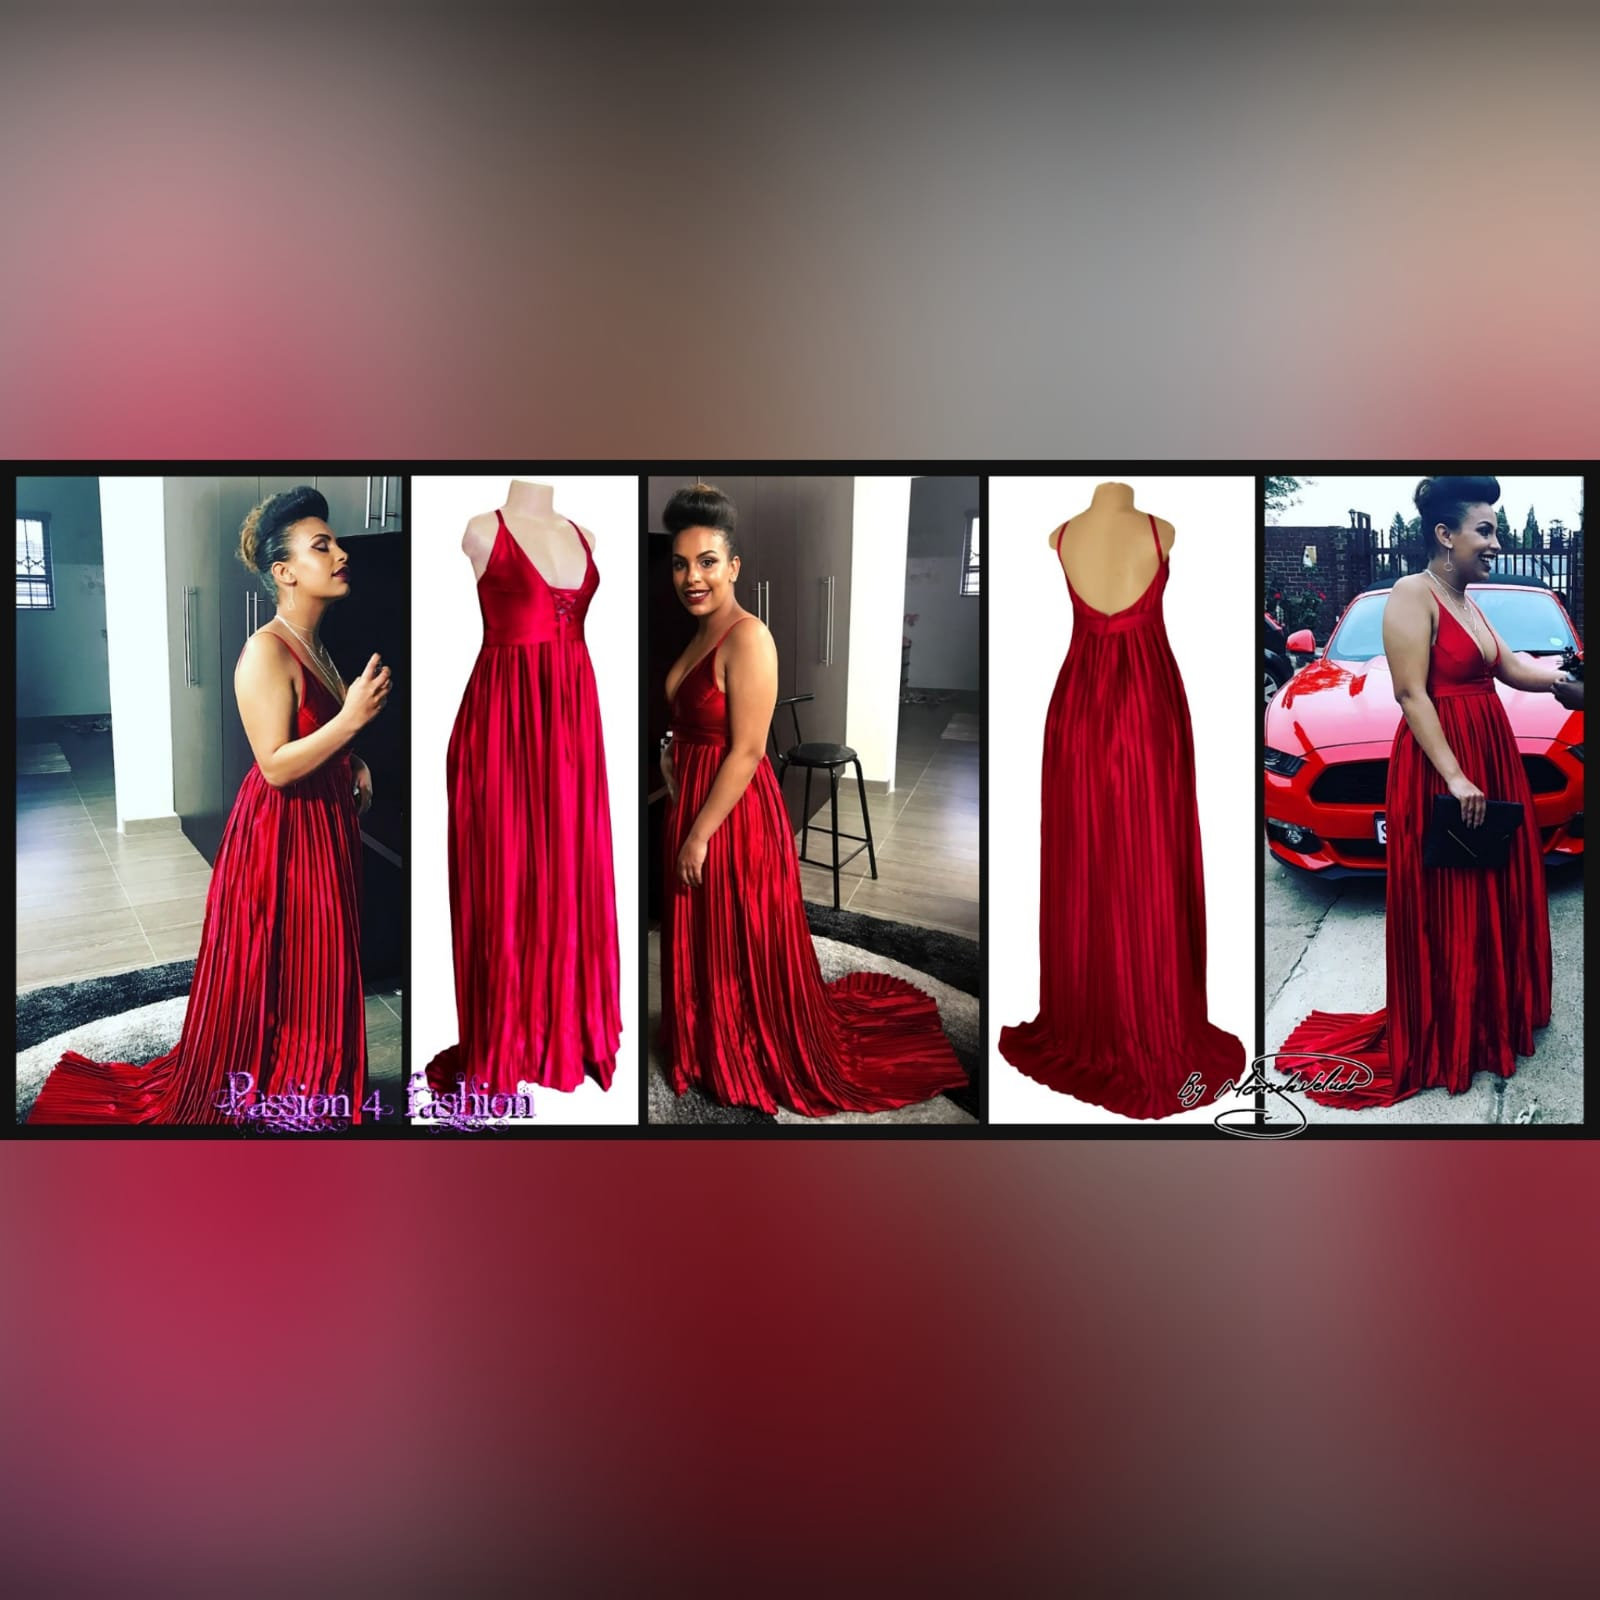 Red pleated satin long evening dress 7 red pleated satin long evening dress with a plunging neckline that closes with a lace-up. Rounded open back. Flowy pleated bottom with a small train.